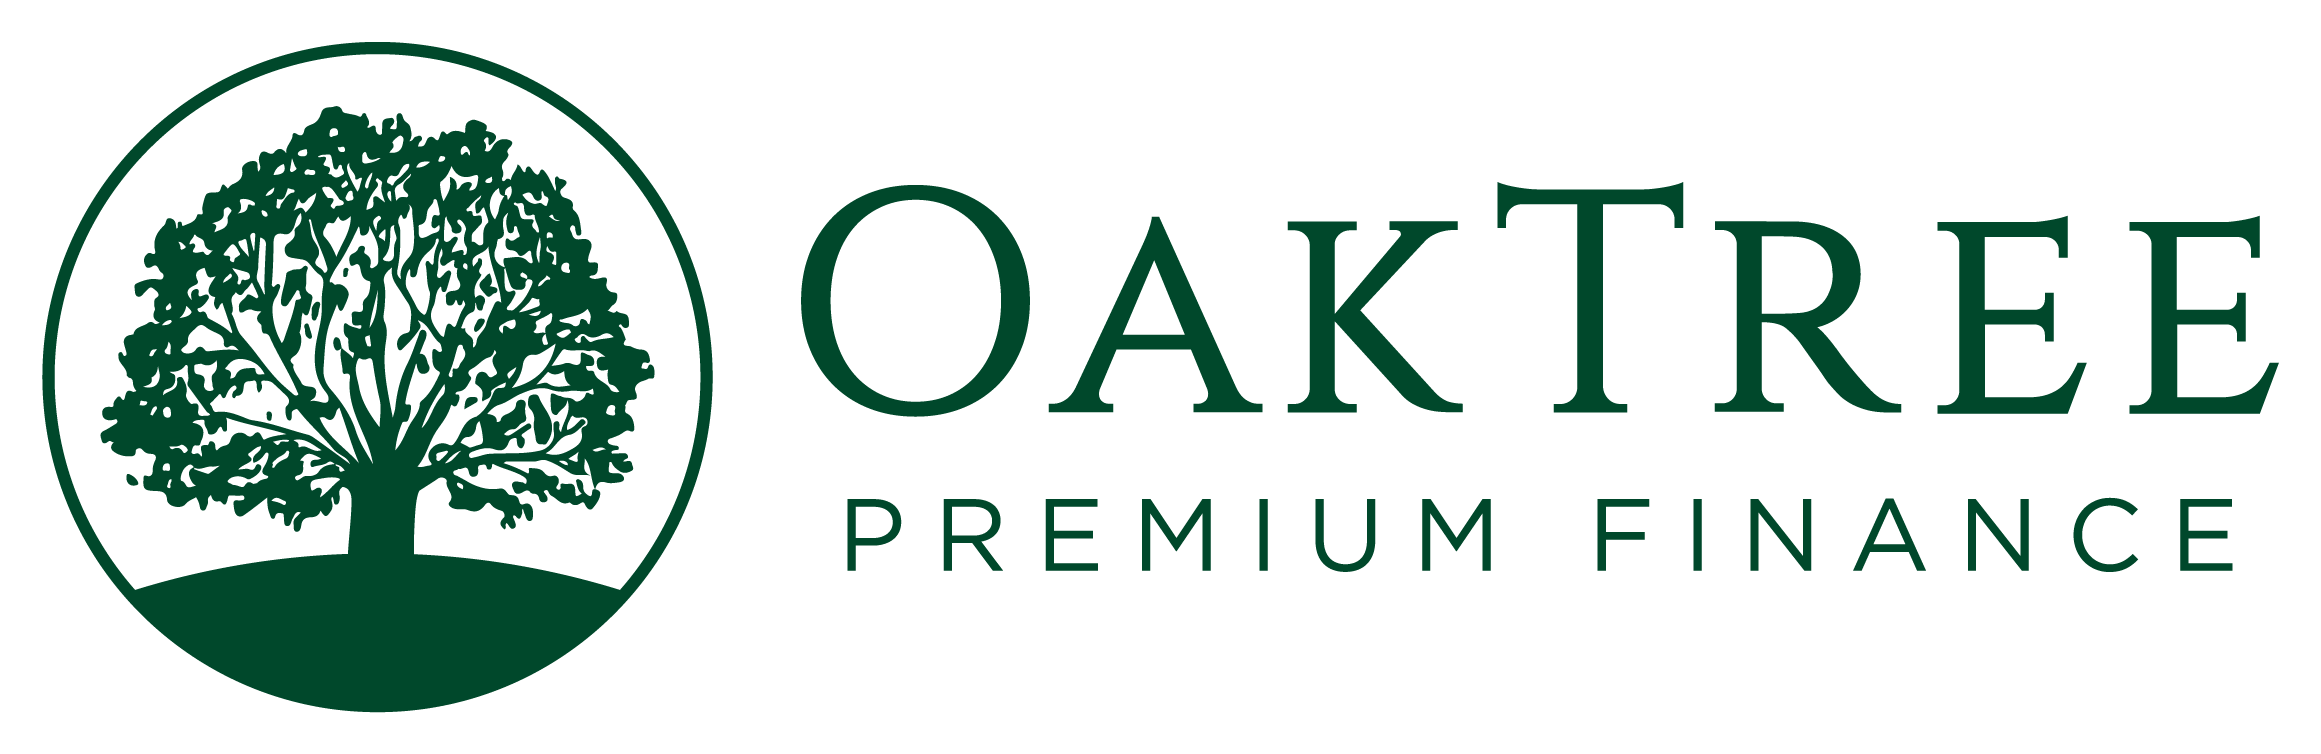 Farmington, Utah Premium Finance || Oak Tree Premium Finance